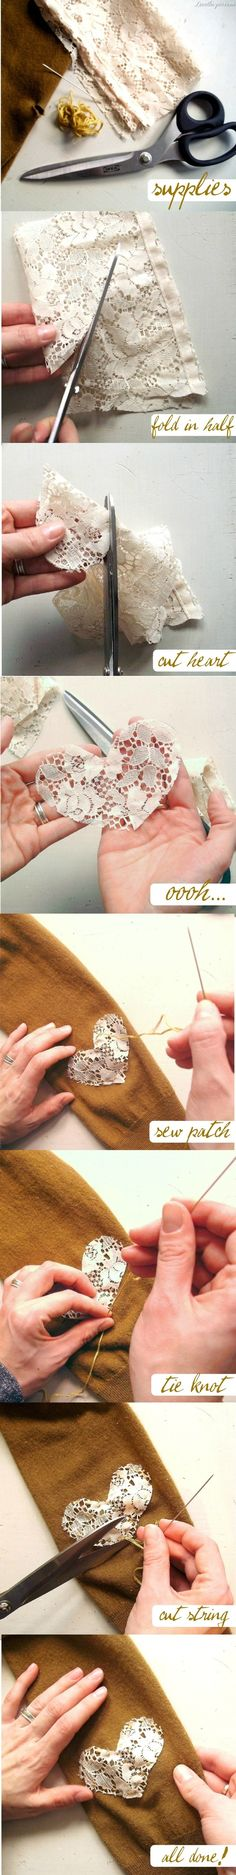 DIY Heart Elbow Lace Pictures, Photos, and Images for Facebook, Tumblr, Pinterest, and Twitter